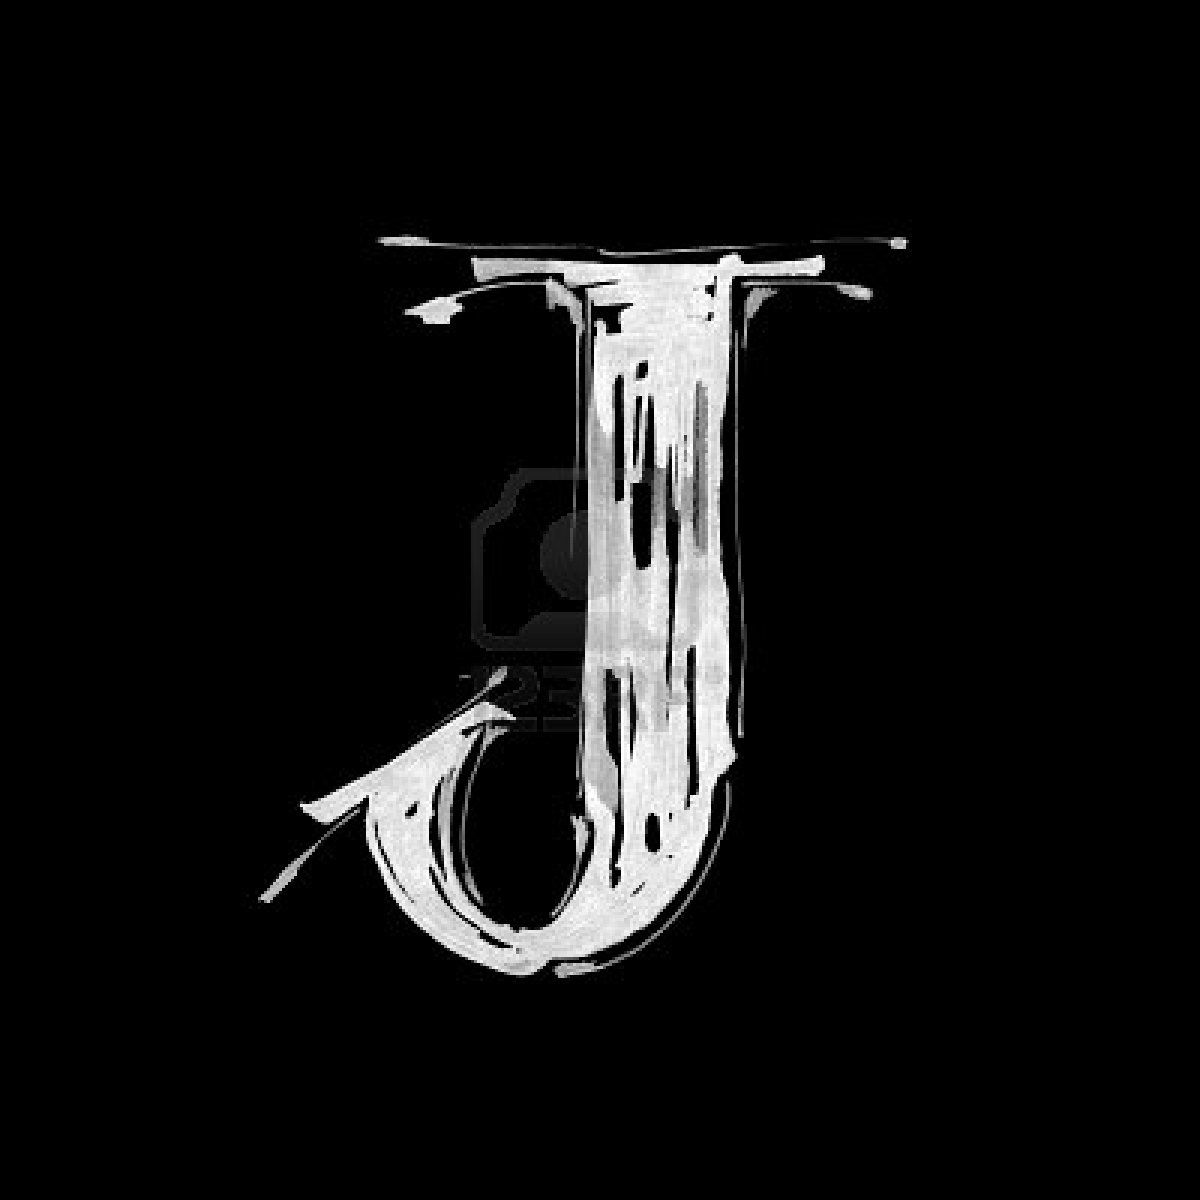 You can download j alphabet hd wallpapers here j alphabet hd you can download j alphabet hd wallpapers here j alphabet hd wallpapers in high resolution thecheapjerseys Images